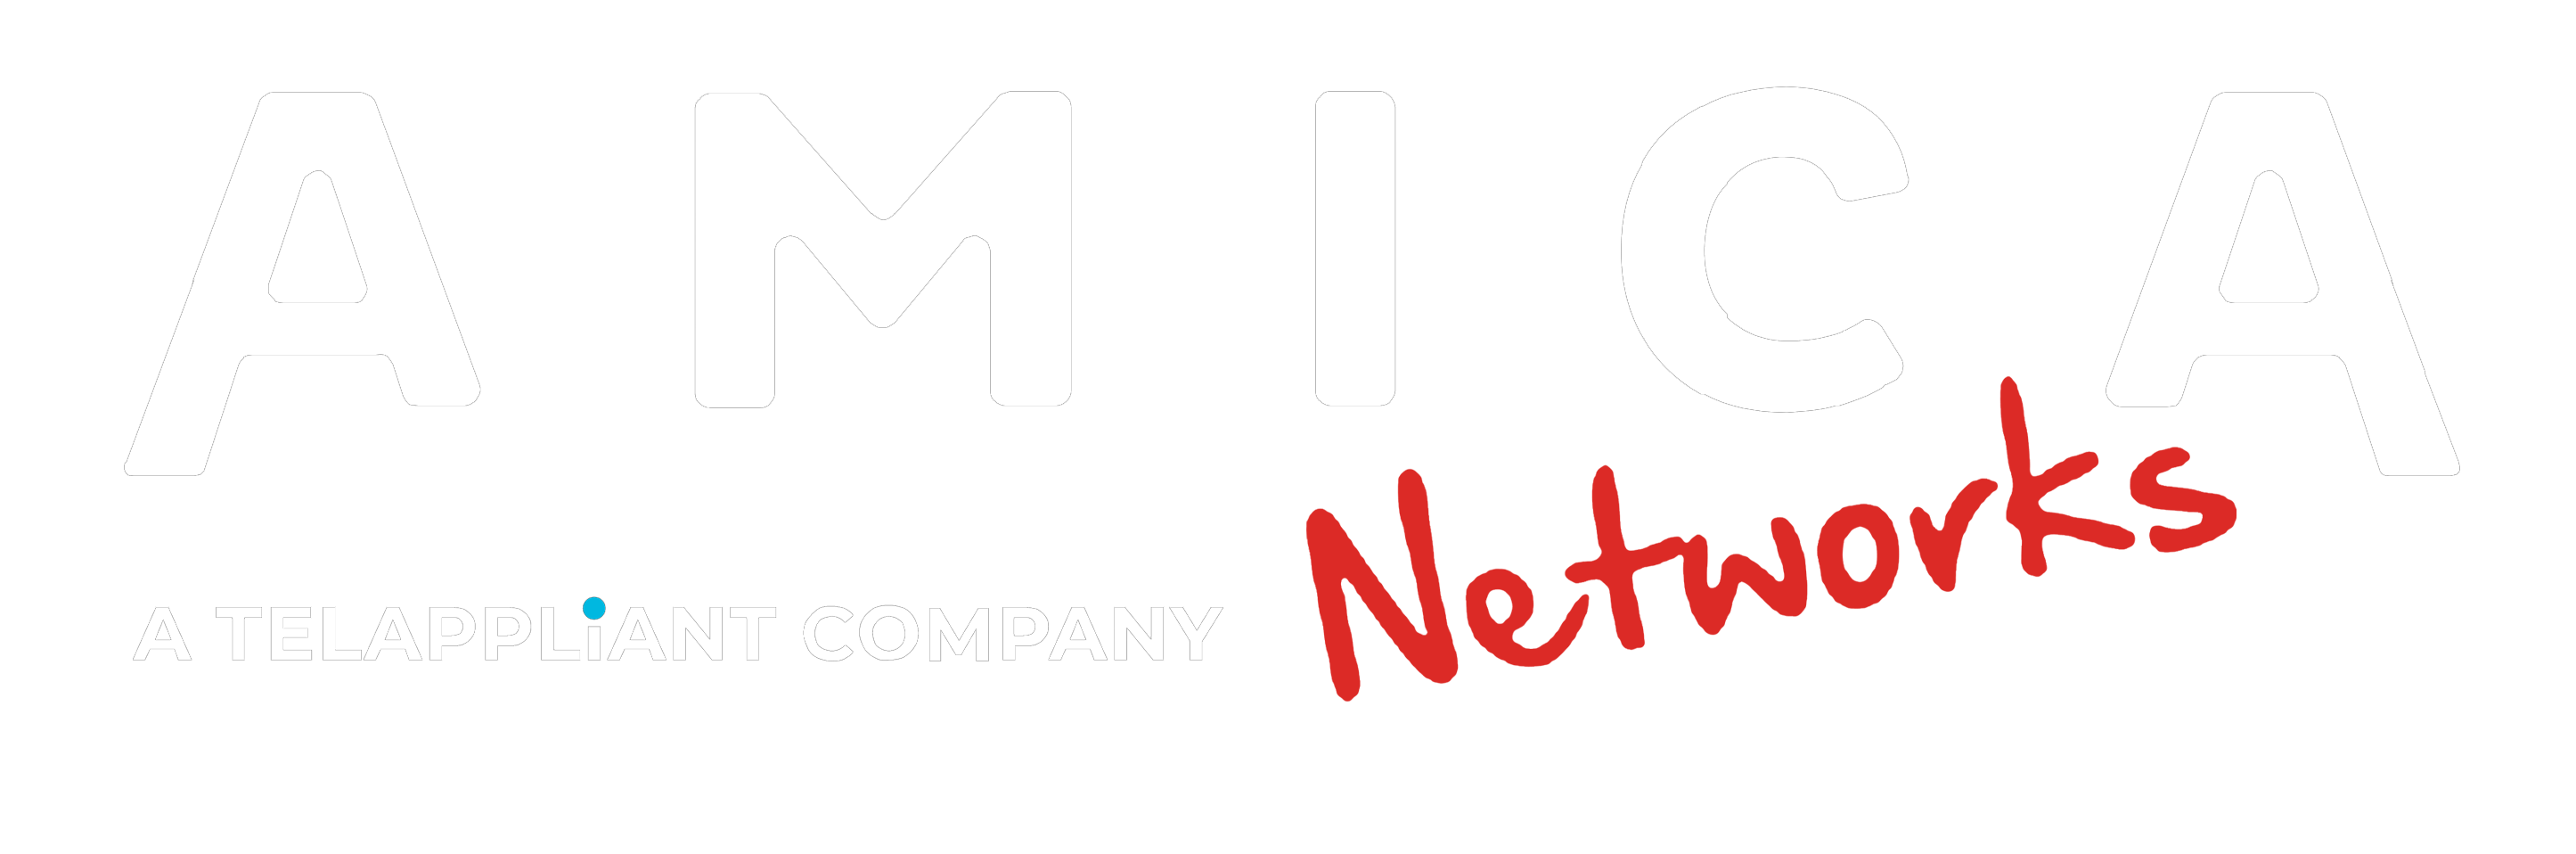 Amica Networks Logo